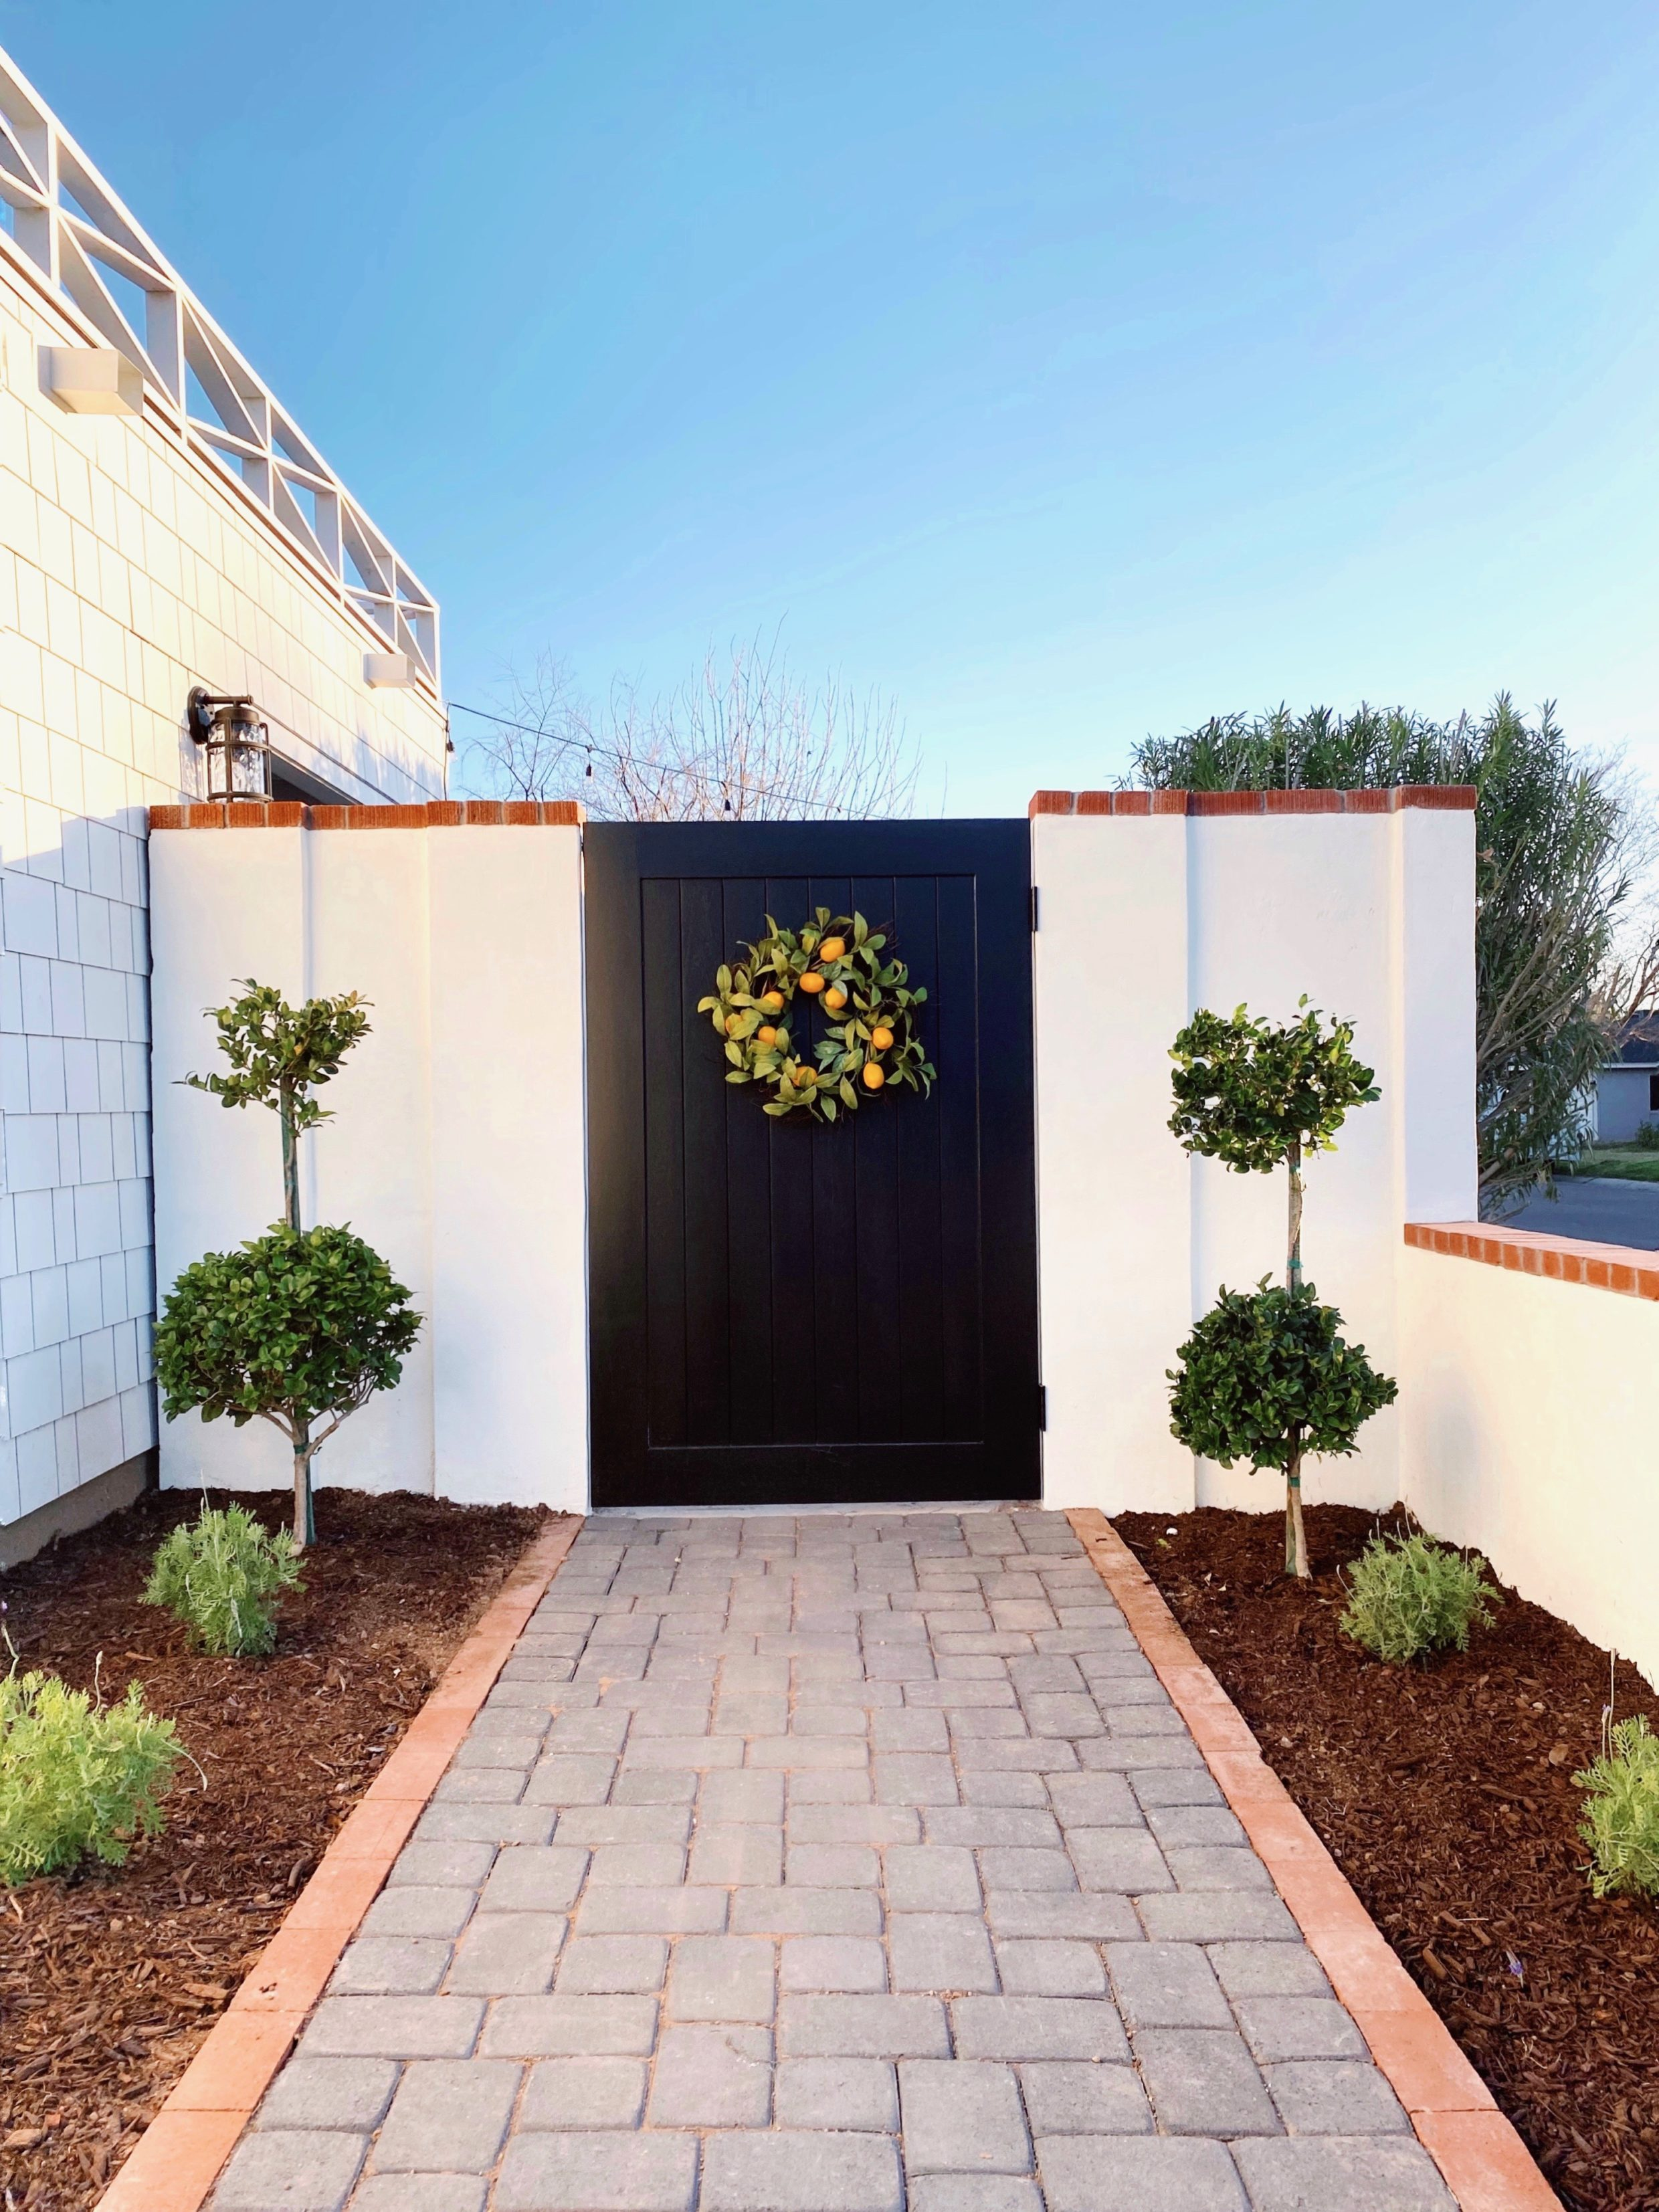 white smooth stucco wall with wood black gate to garden area double topiaries on both sides lifestyle home blog Diana Elizabeth Phoenix Arizona